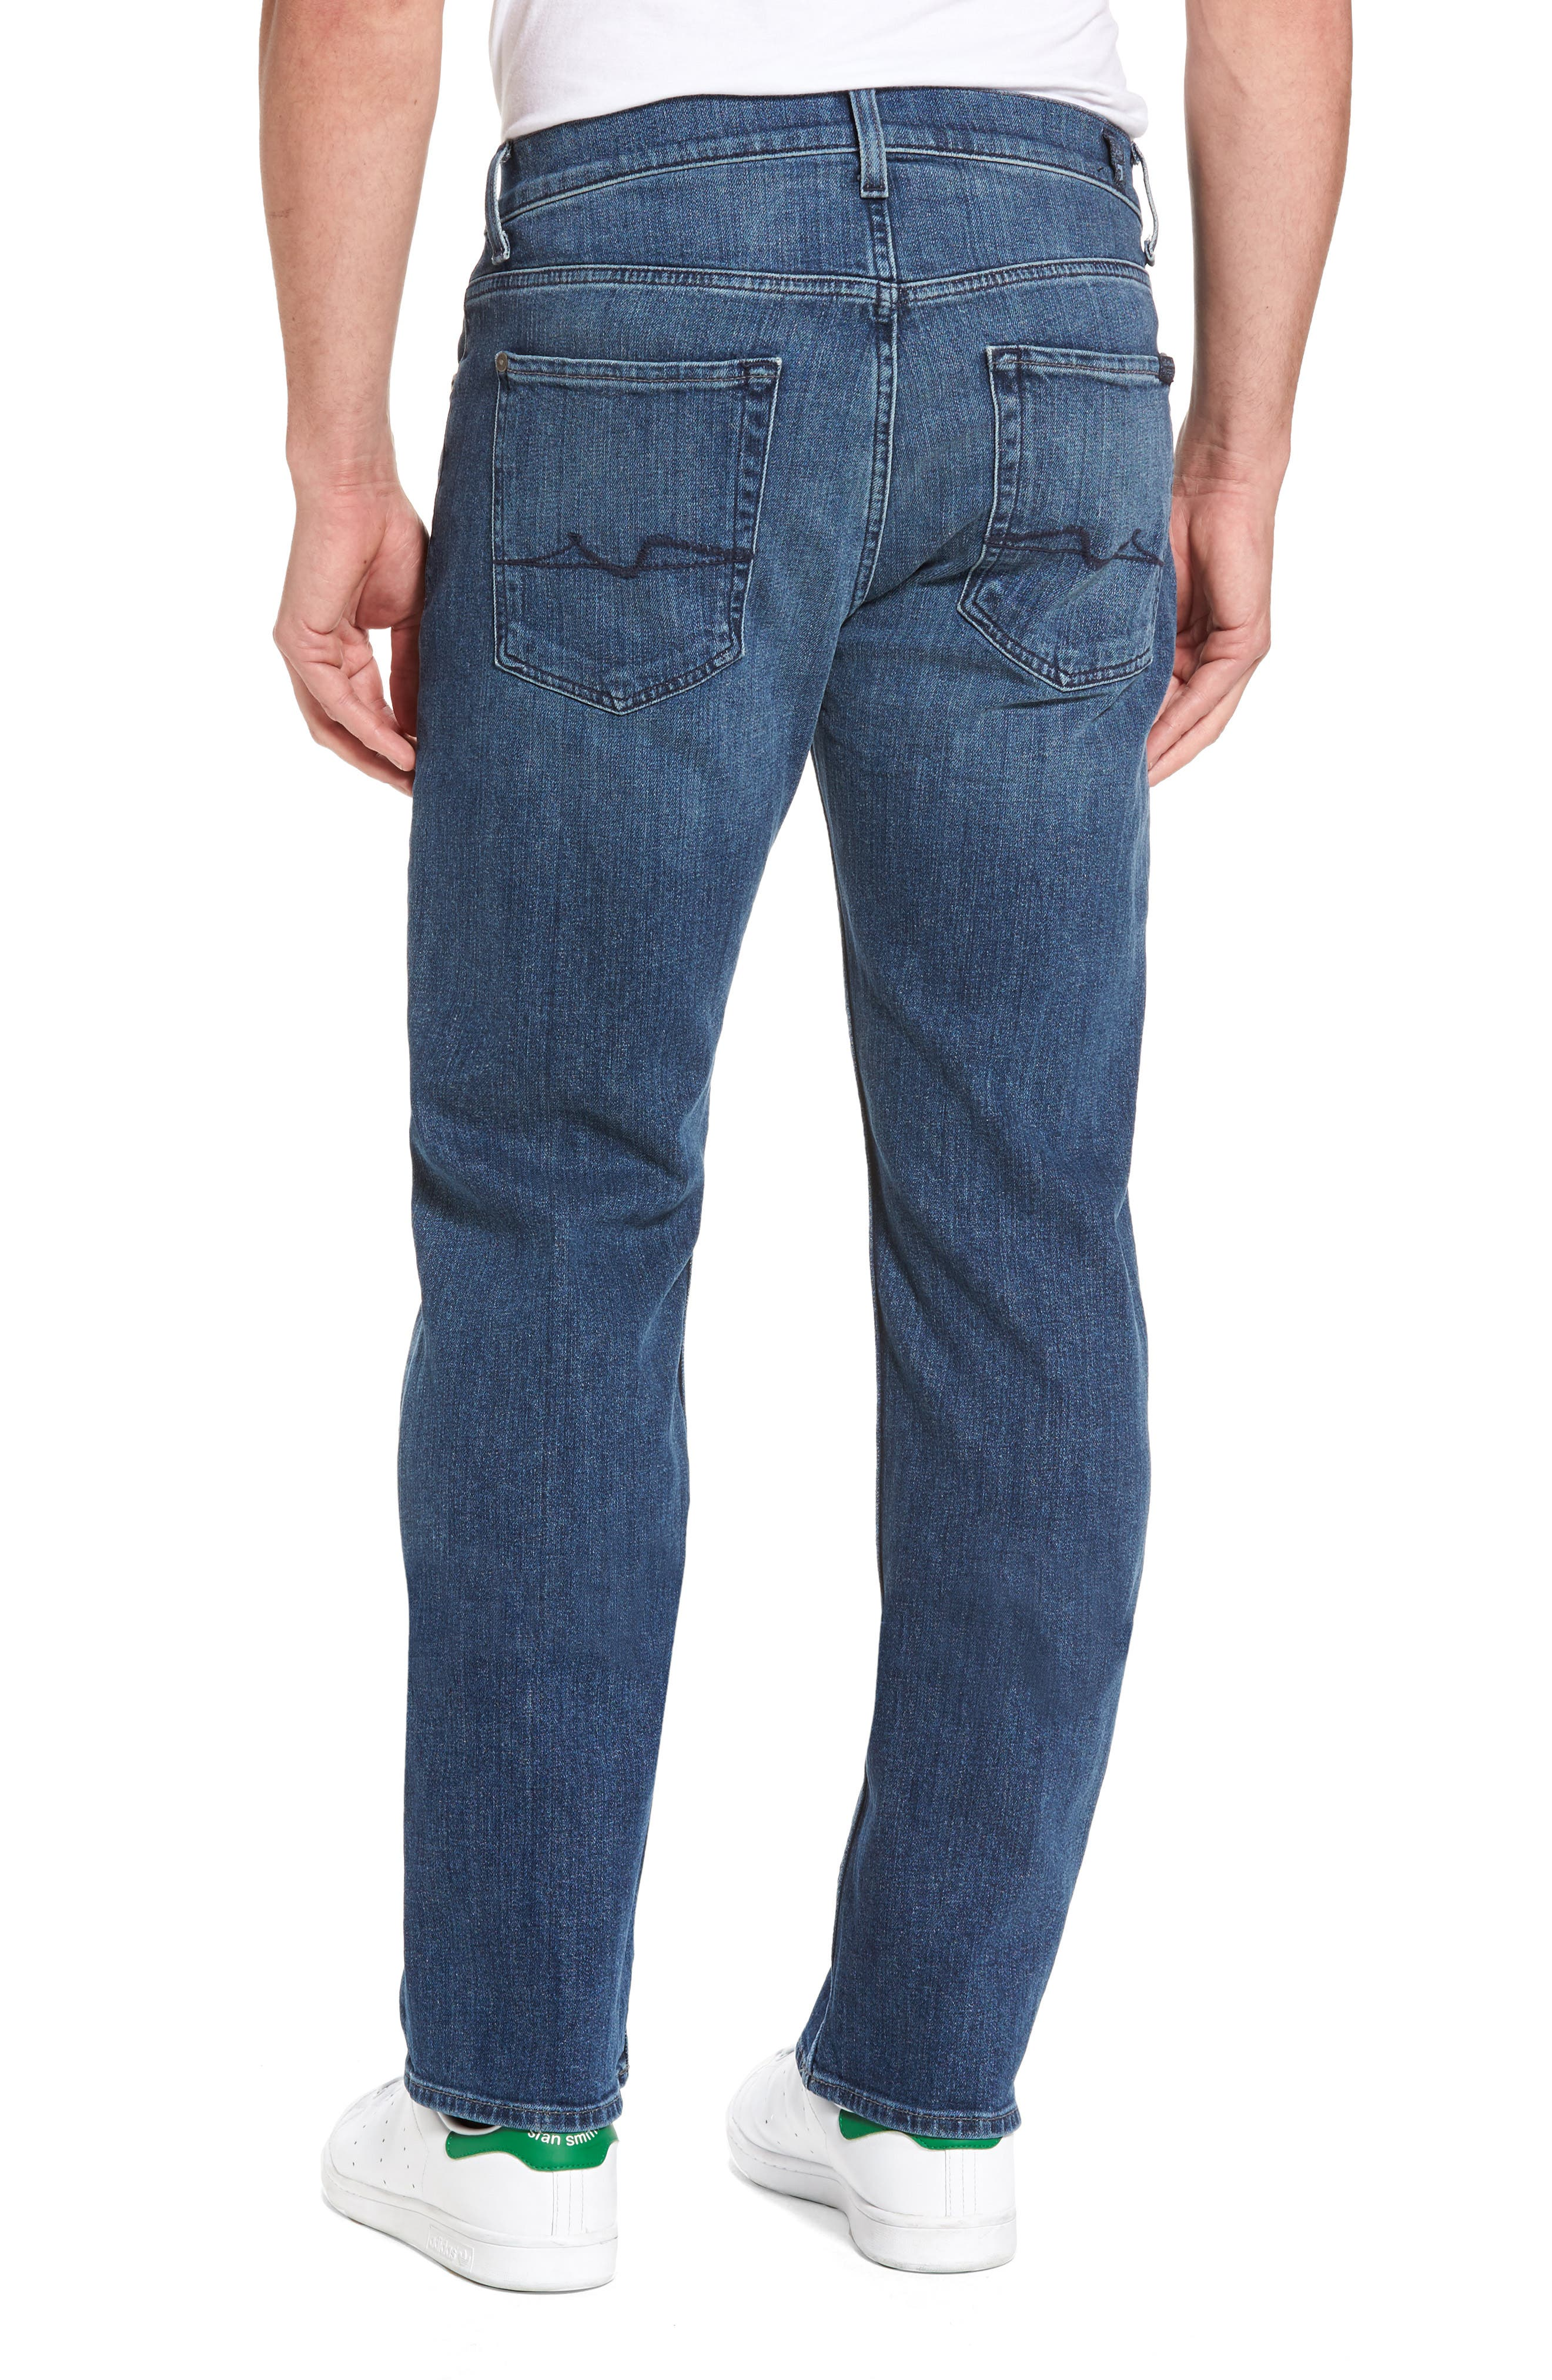 Austyn Relaxed Fit Jeans,                             Alternate thumbnail 2, color,                             Townsend